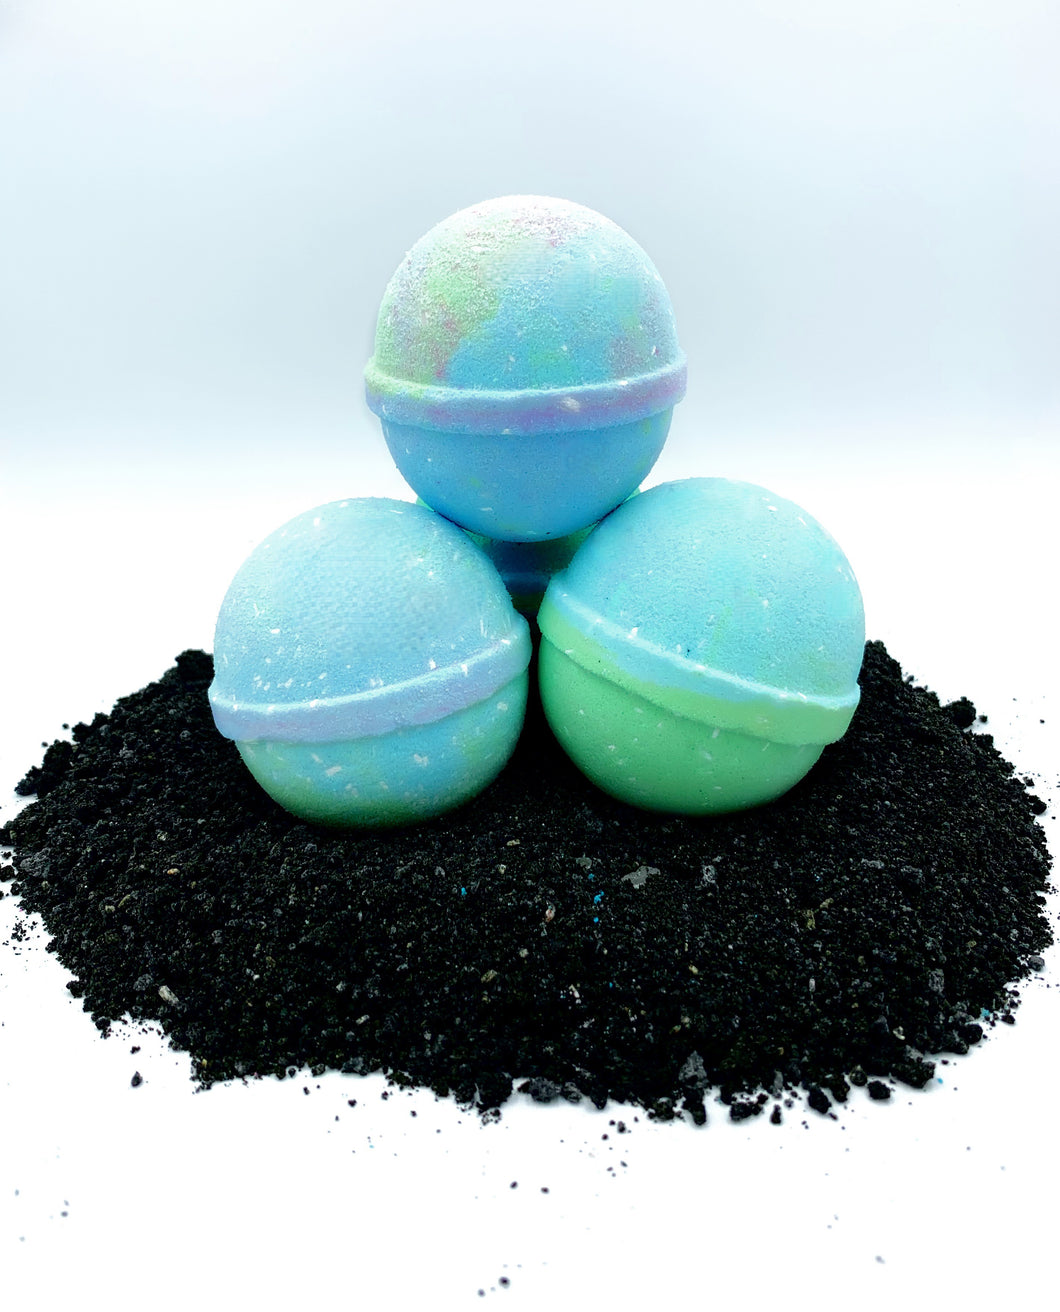 Bath Bomb 'Kissing Mermaids' Bath Bombs (wholesale) Made in the USA